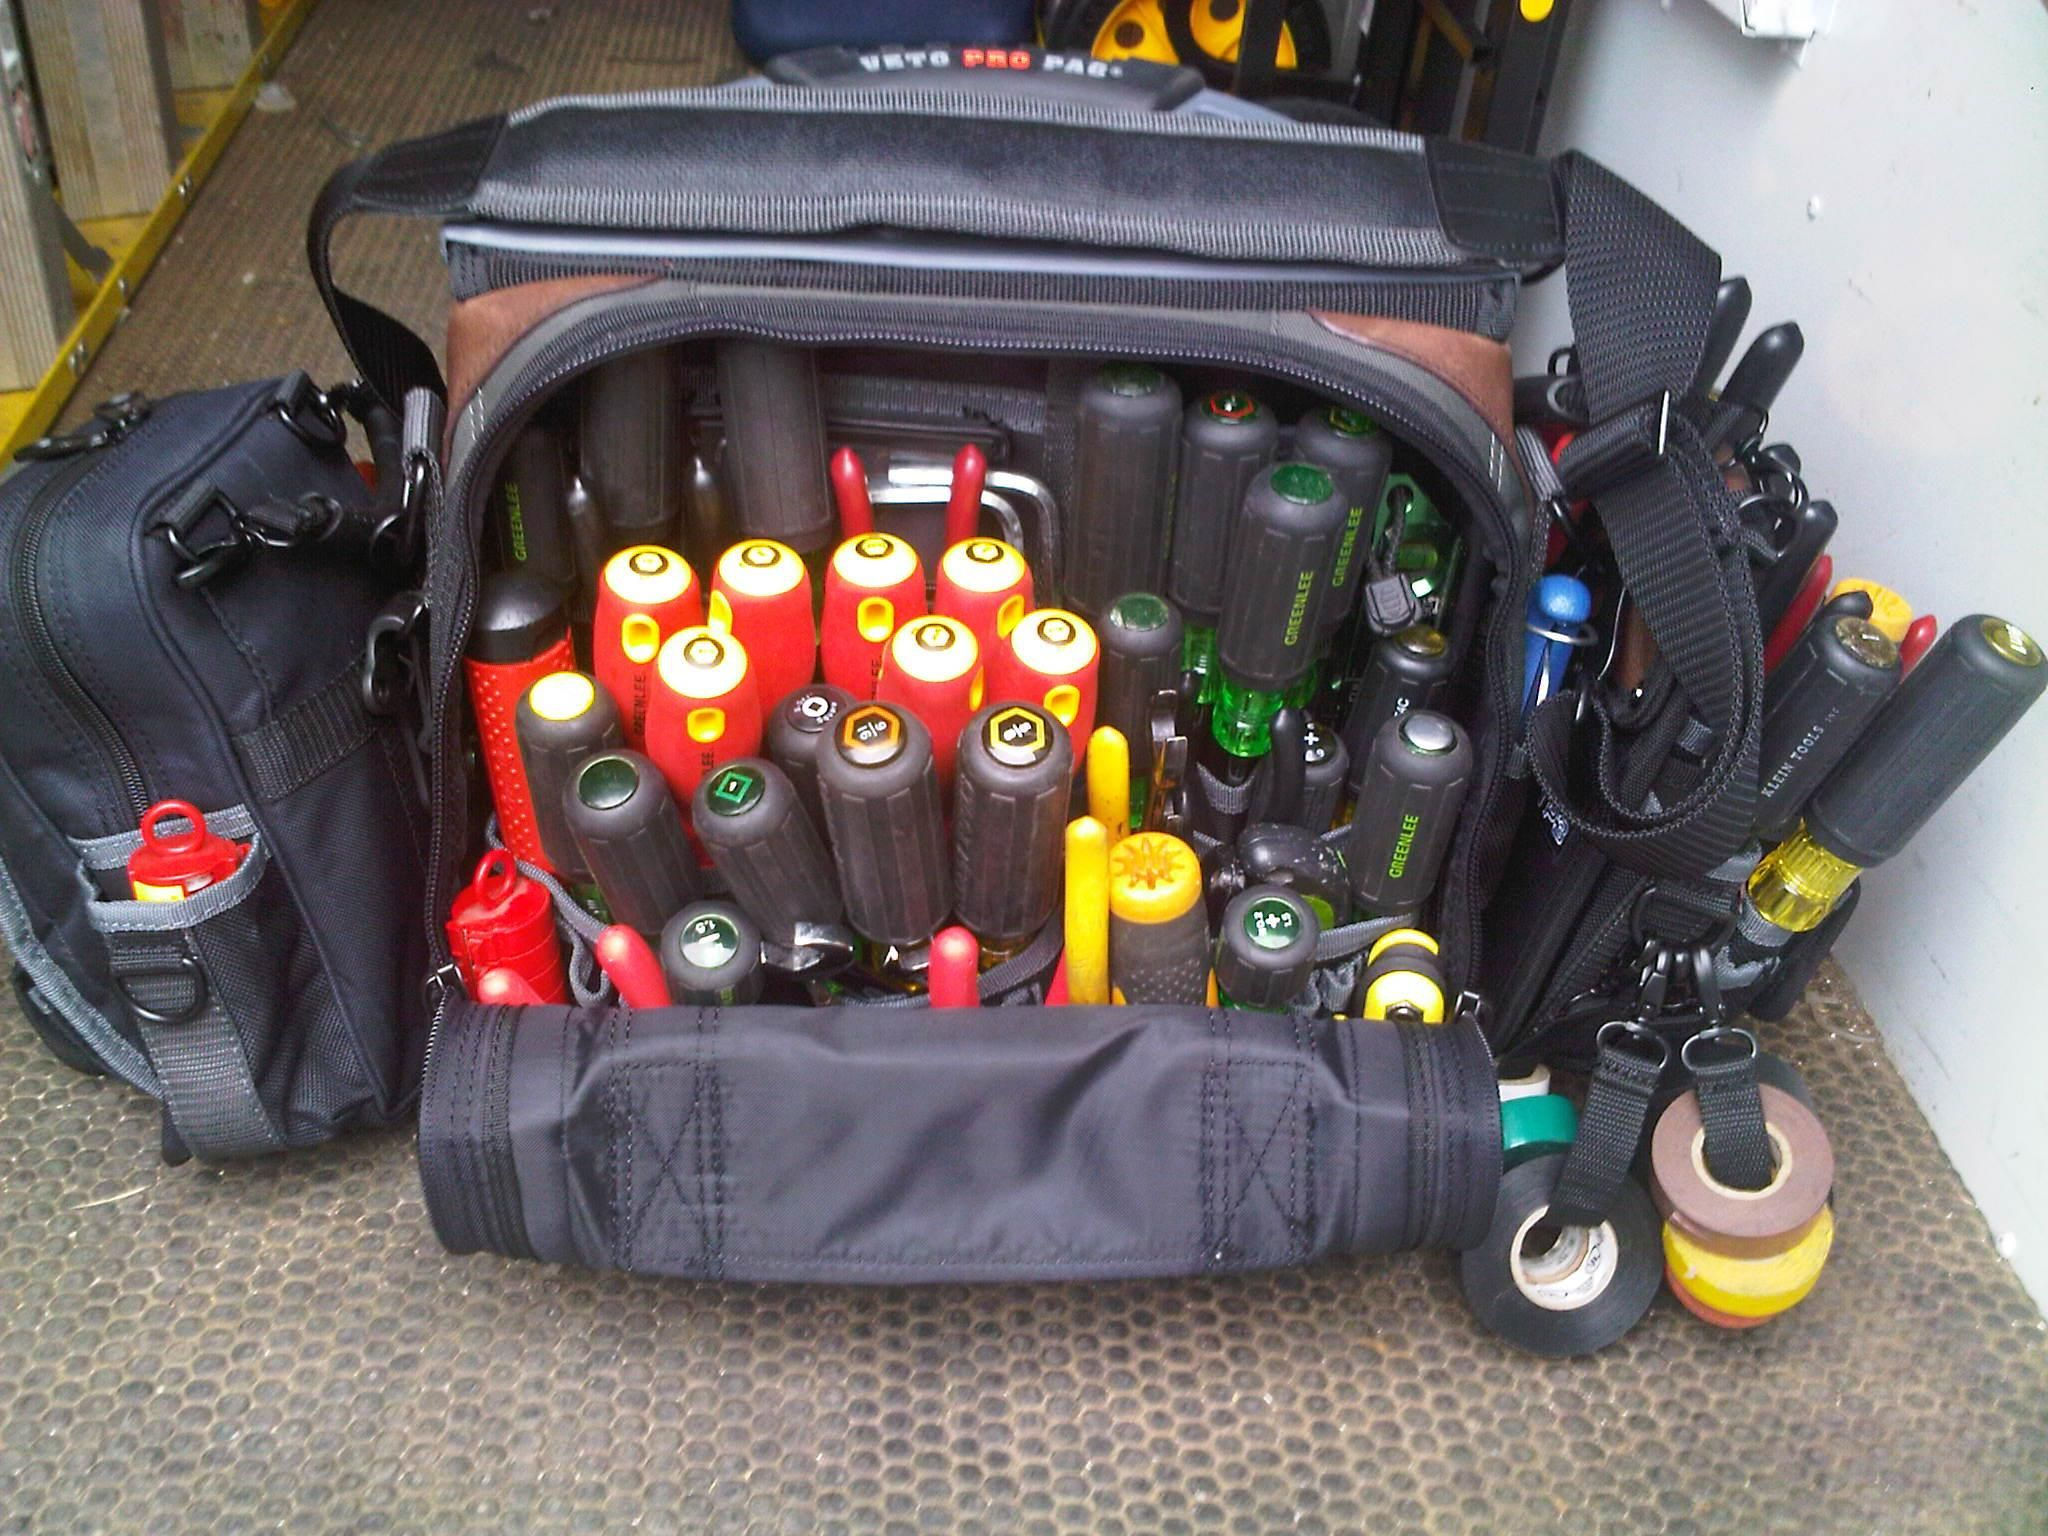 Electrician Tool Bag Series - great line with detachable pouches